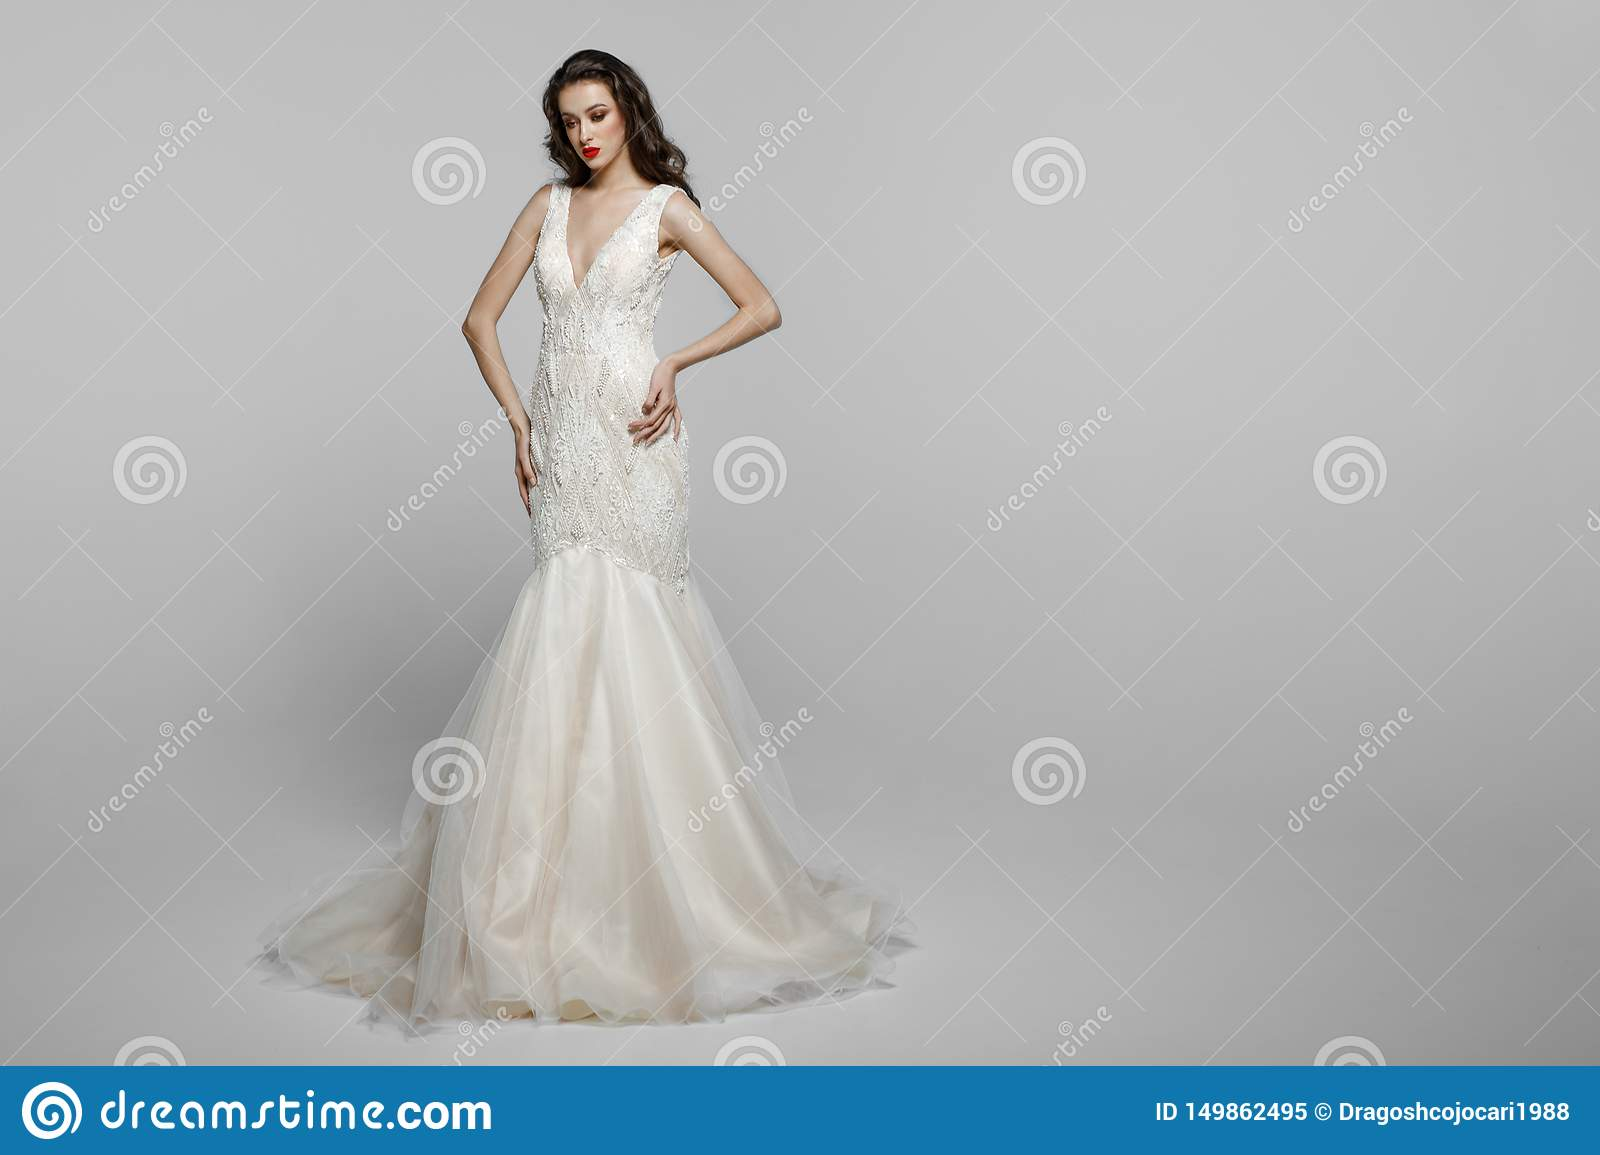 Horizontal view of a beautiful female model with long hair, make up in wendding dress, isolated on a white background.